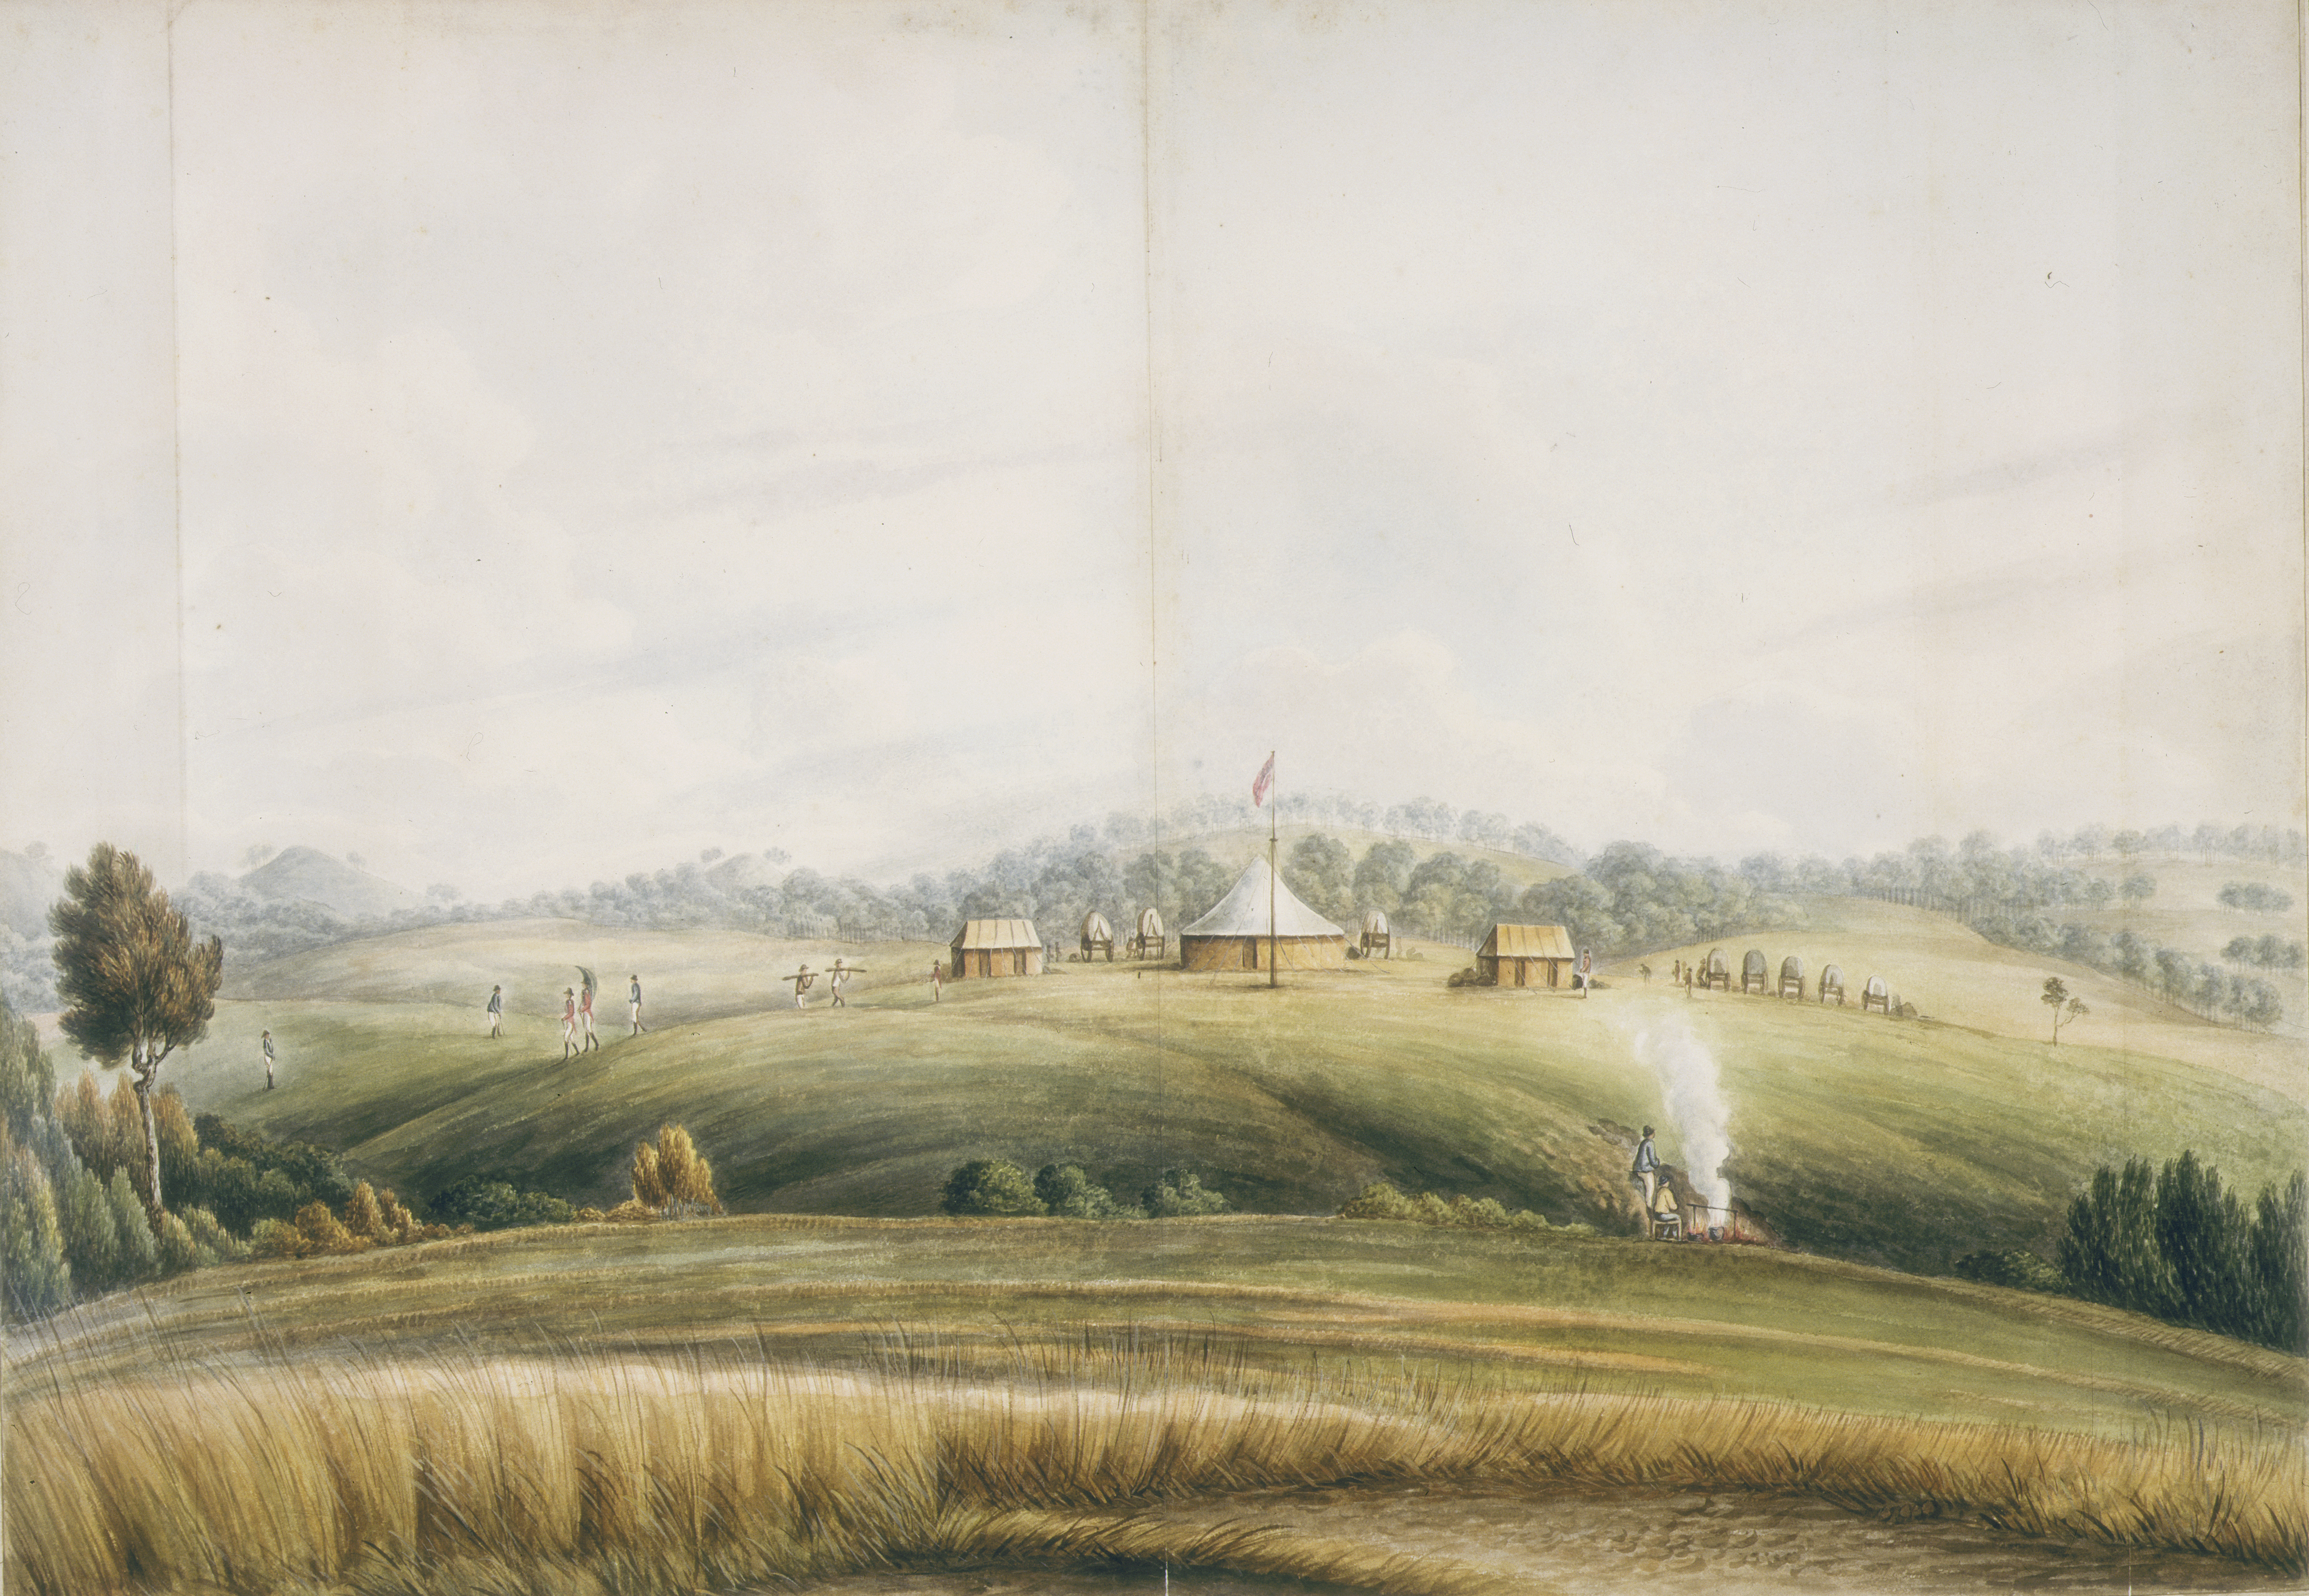 A painting of a landscape with early colonial structures on top of a grassy hill surrounded by pastural land. Soldiers and workers can be seen moving amongst the building and parked buggies while two men tend a fire in the foreground pasture.